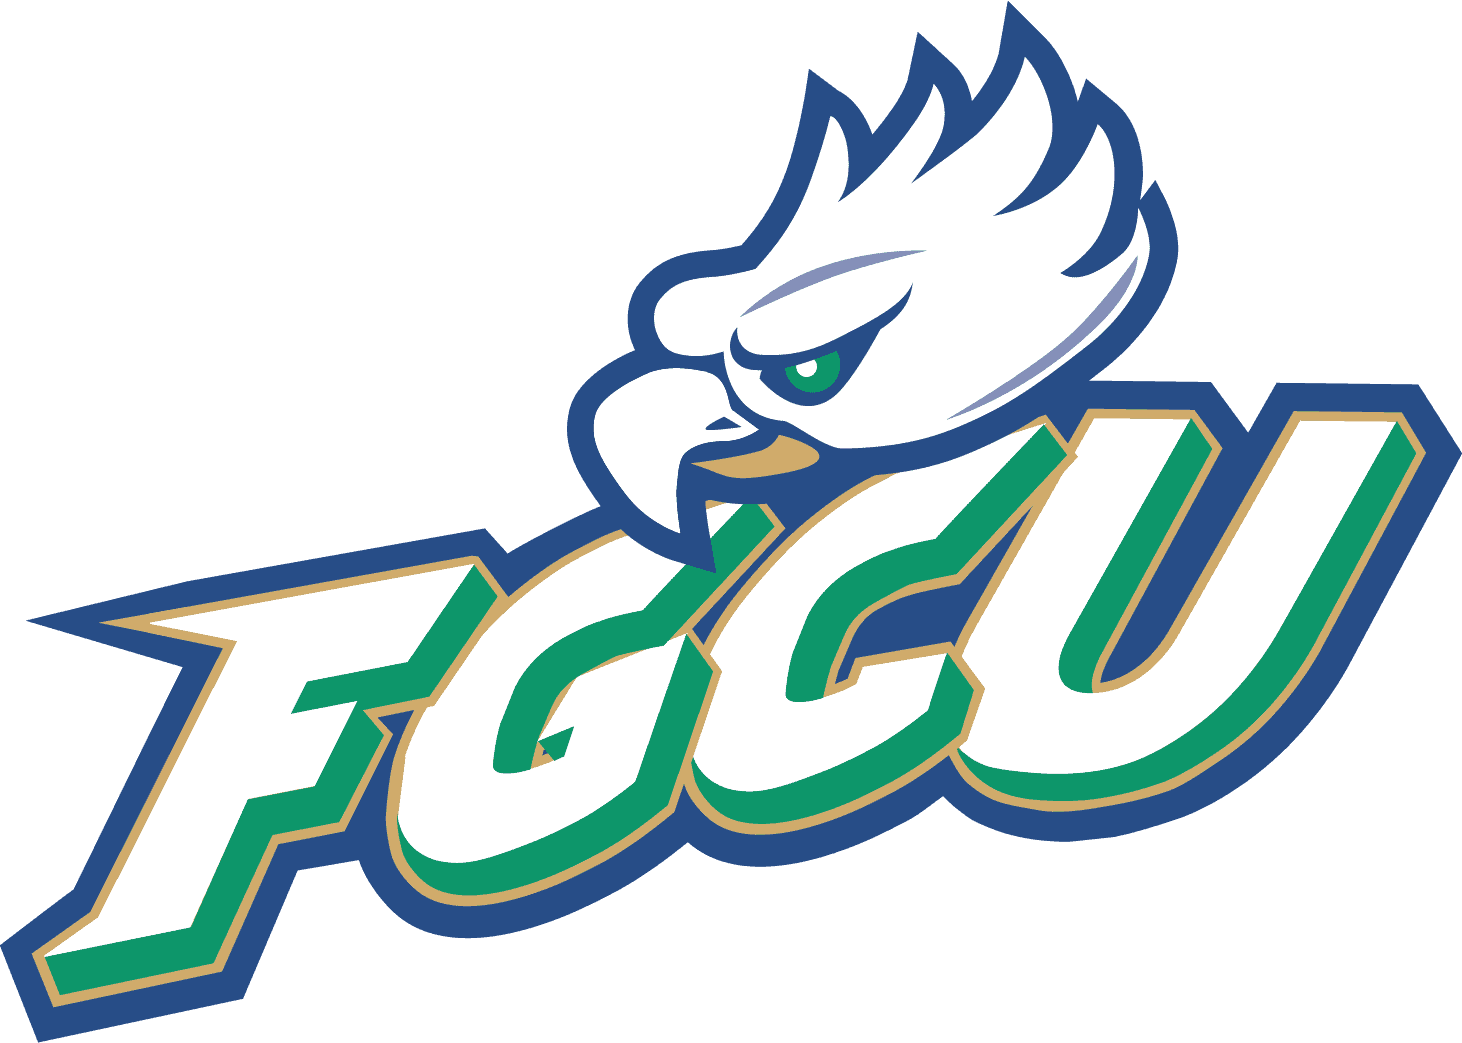 Florida Gulf Coast Eagles Logo (FGCU) png